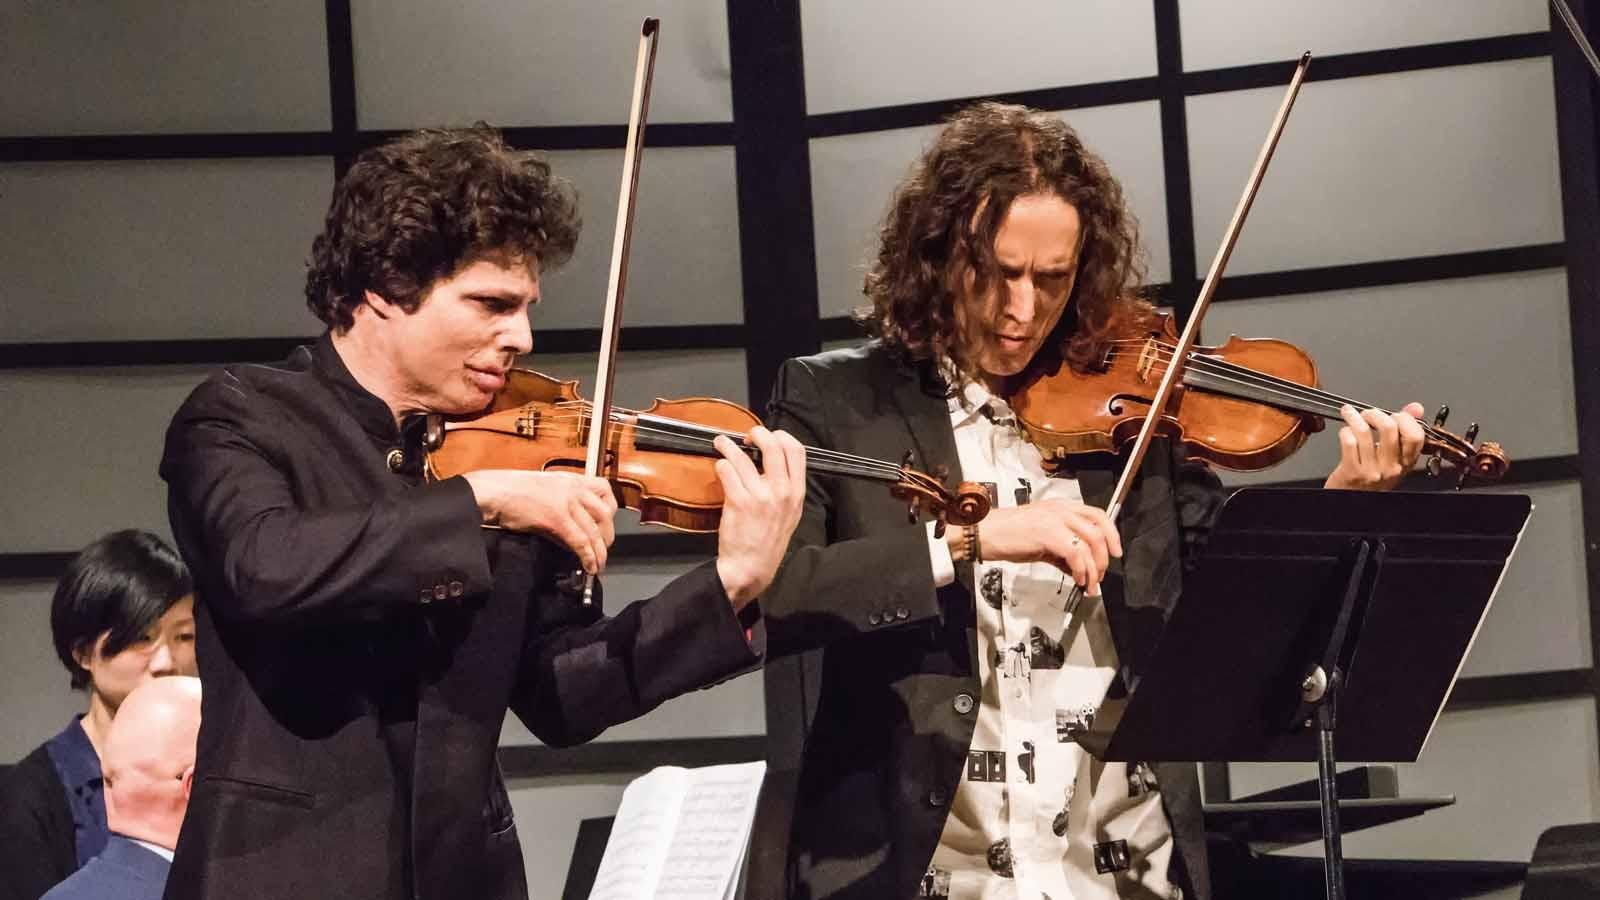 Augustin Hadelich and Tin Fain perform.